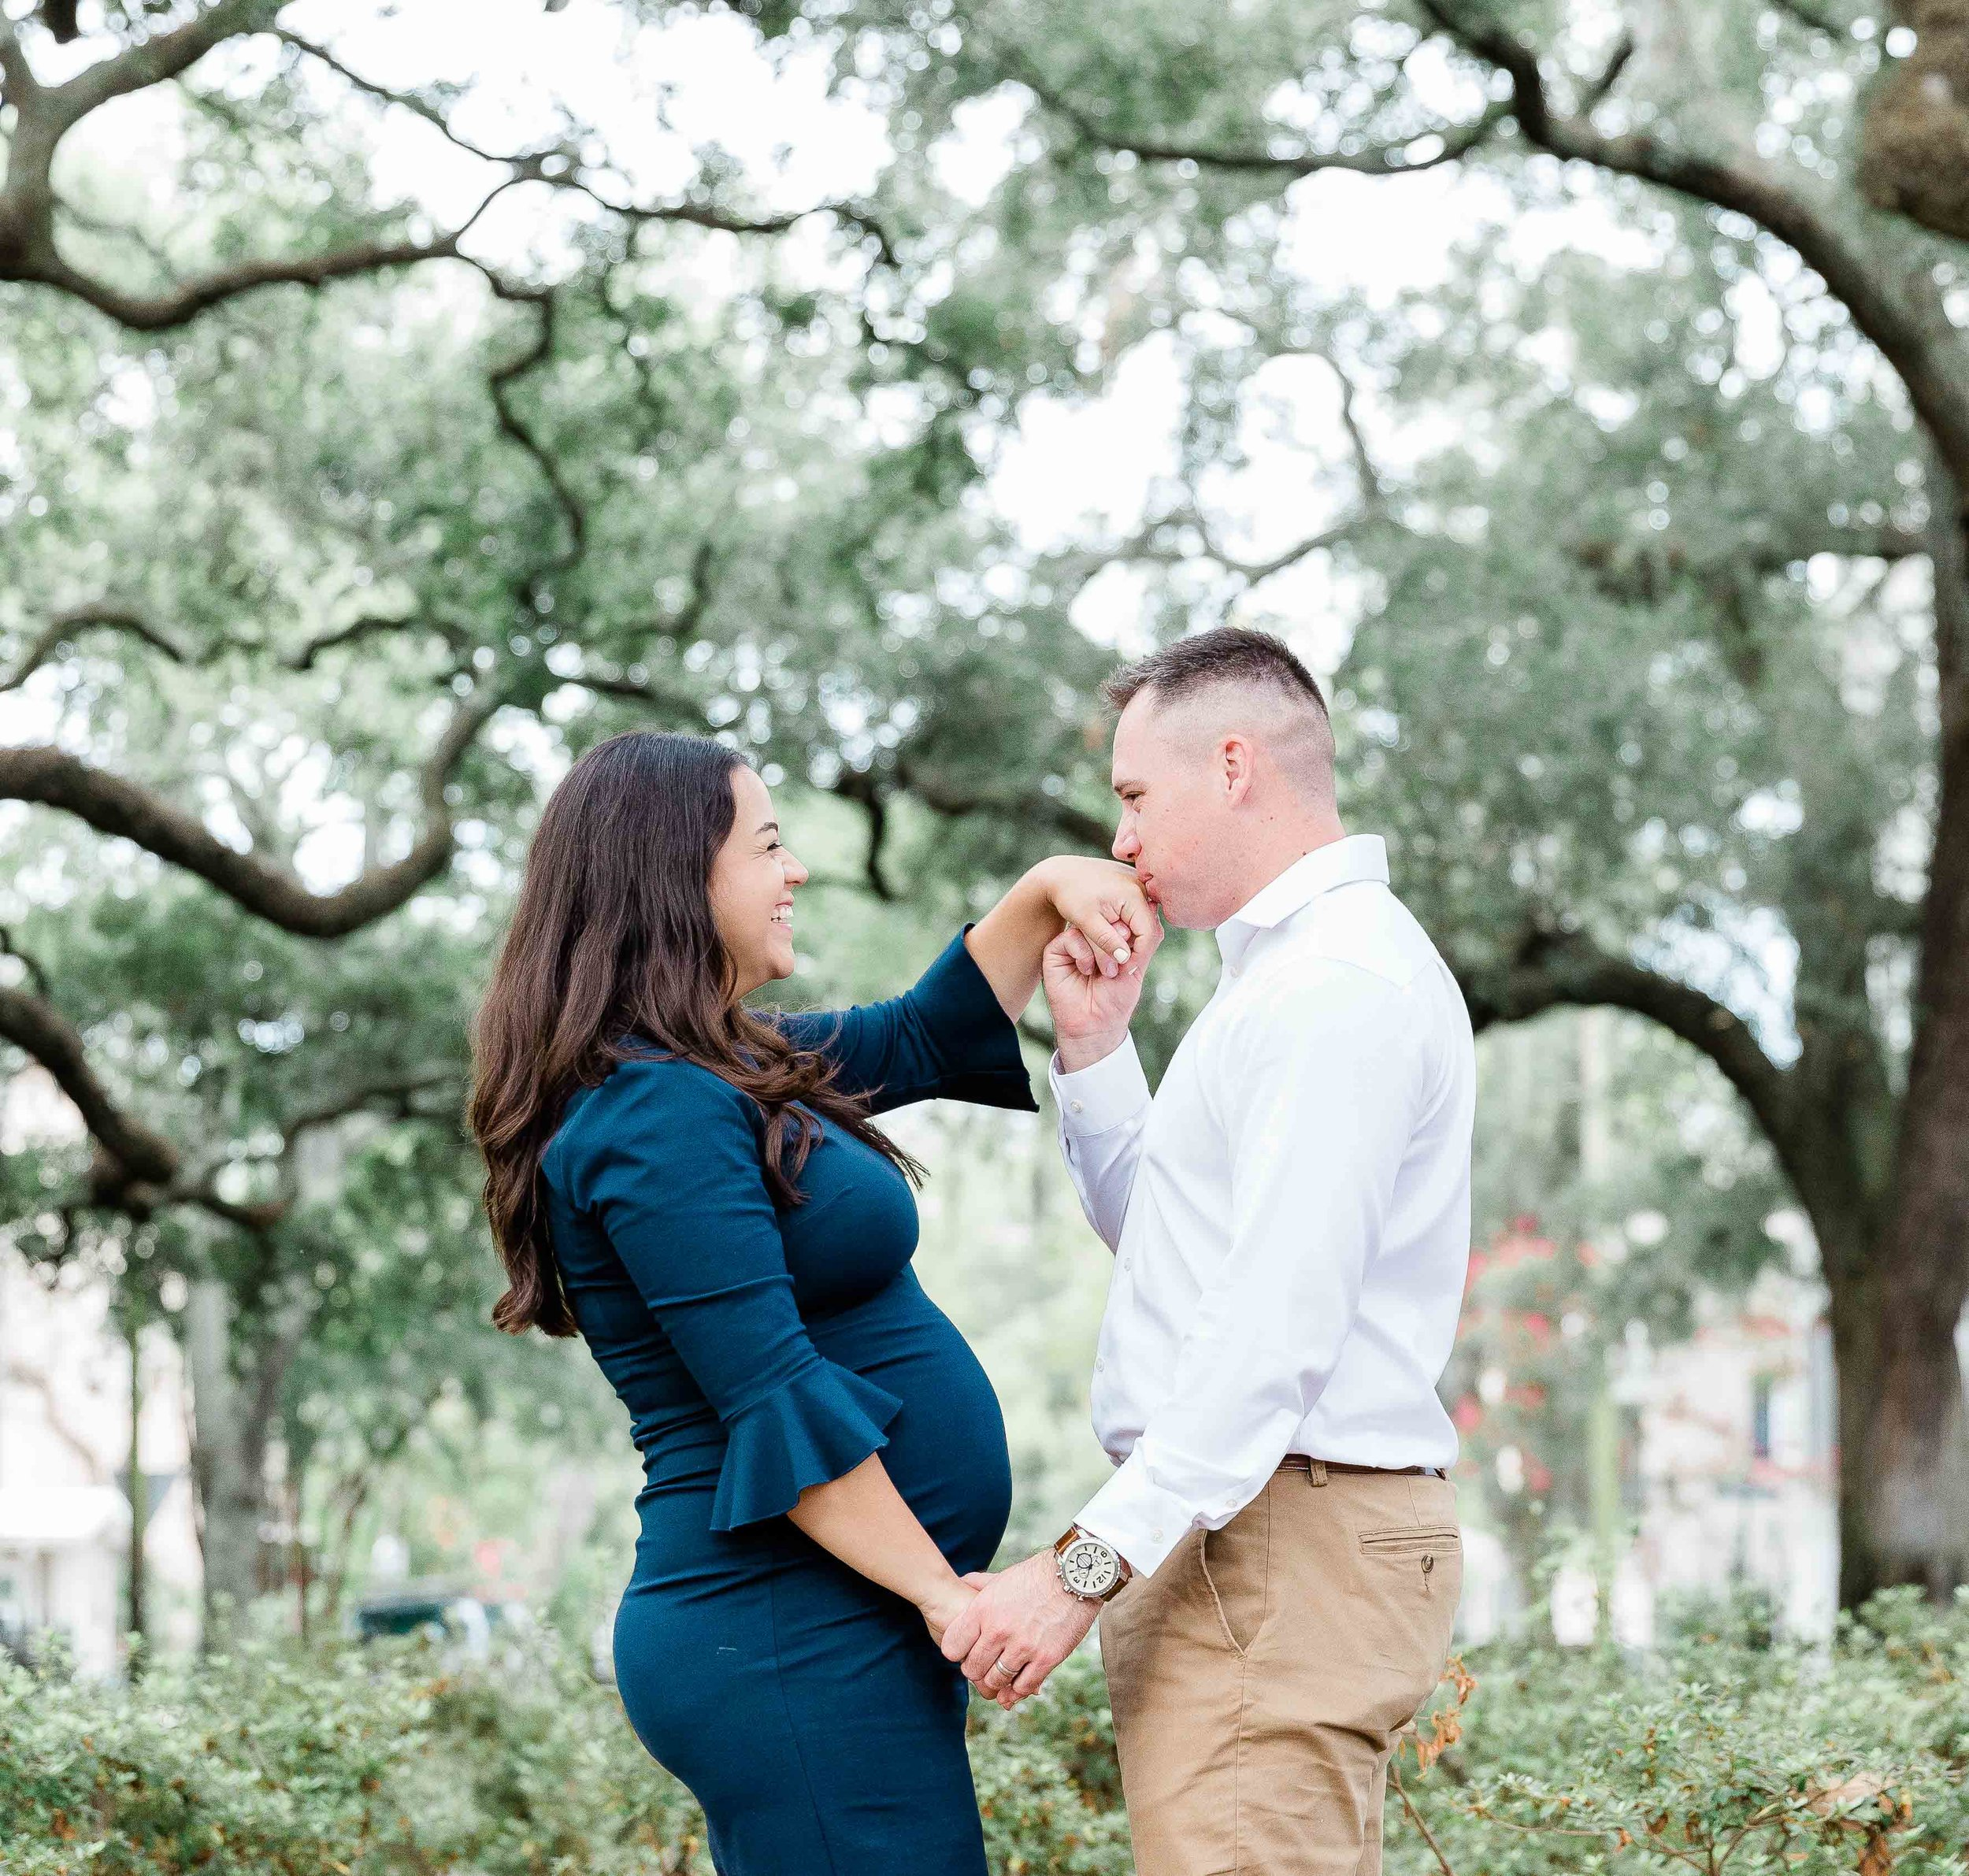 AJ0A7238Tybee Island and Pulaski Square Maternity Session19.jpg